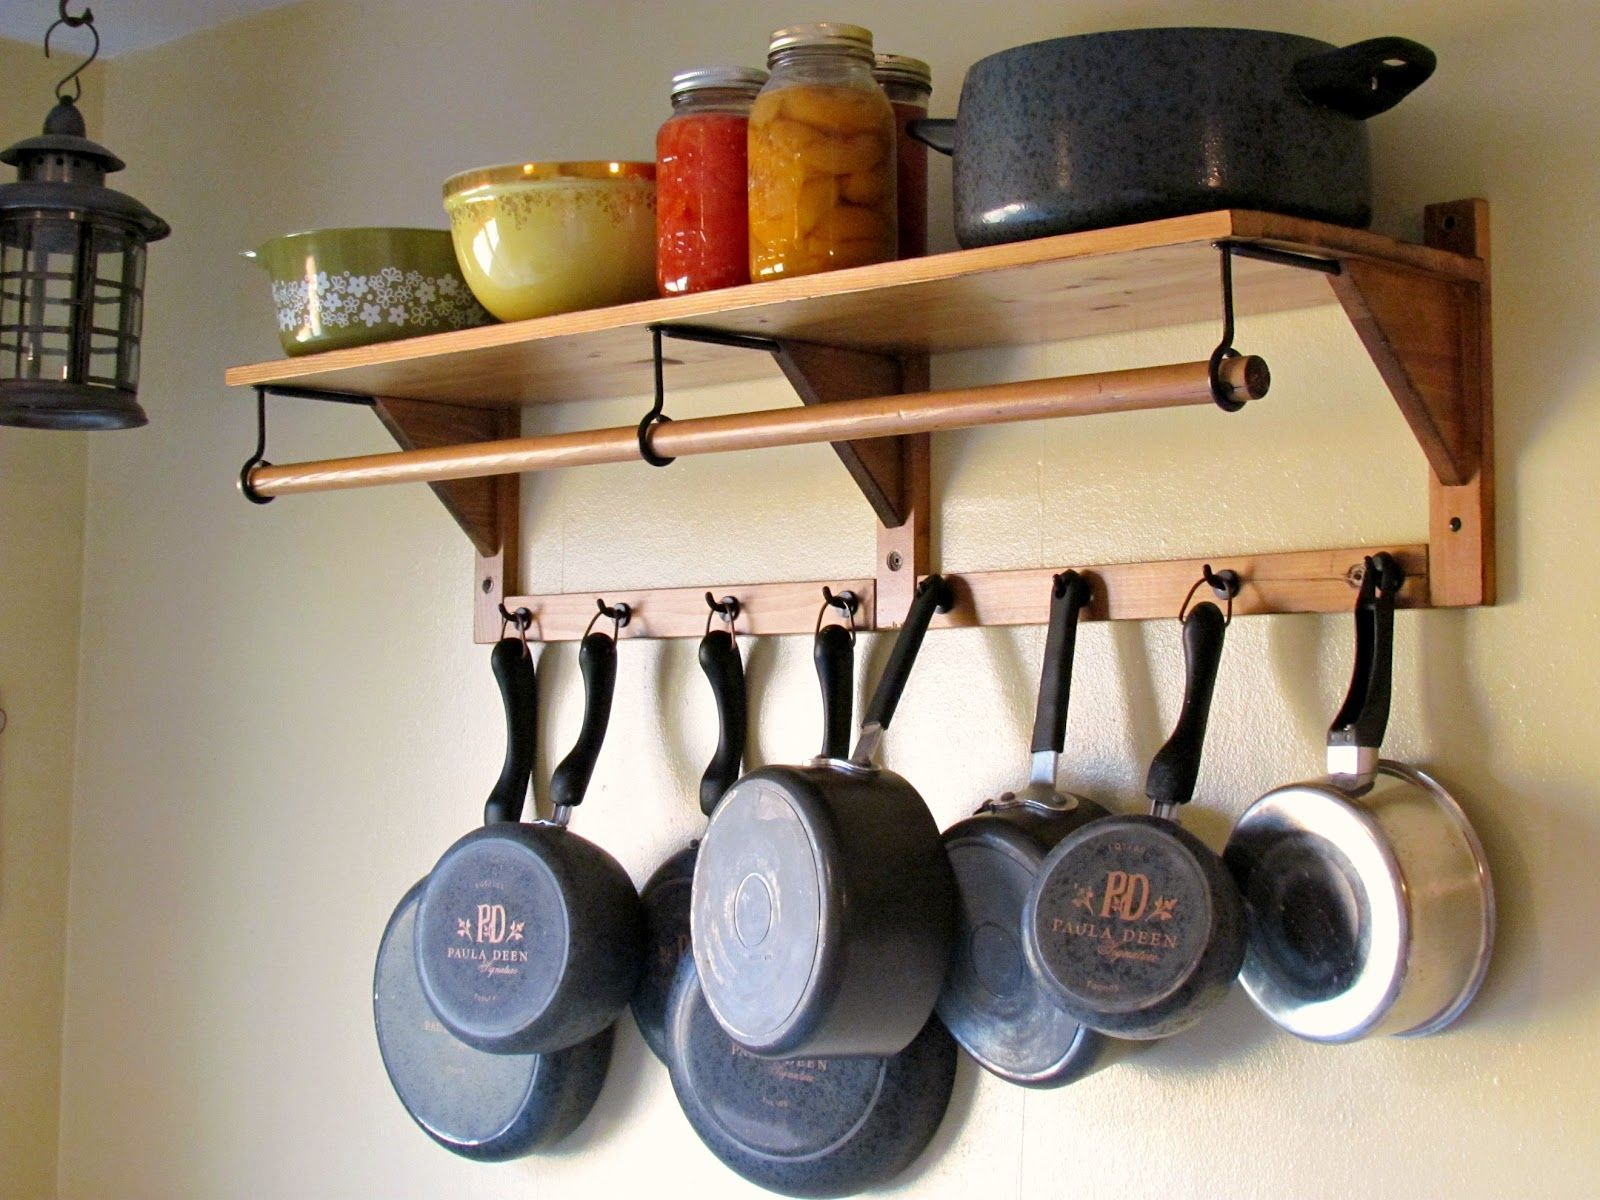 pics hang from pans ceiling pan kitchen hanging hanger on popular concept inspiring and with ikea pots image of marvelous pot rack for cool ideas